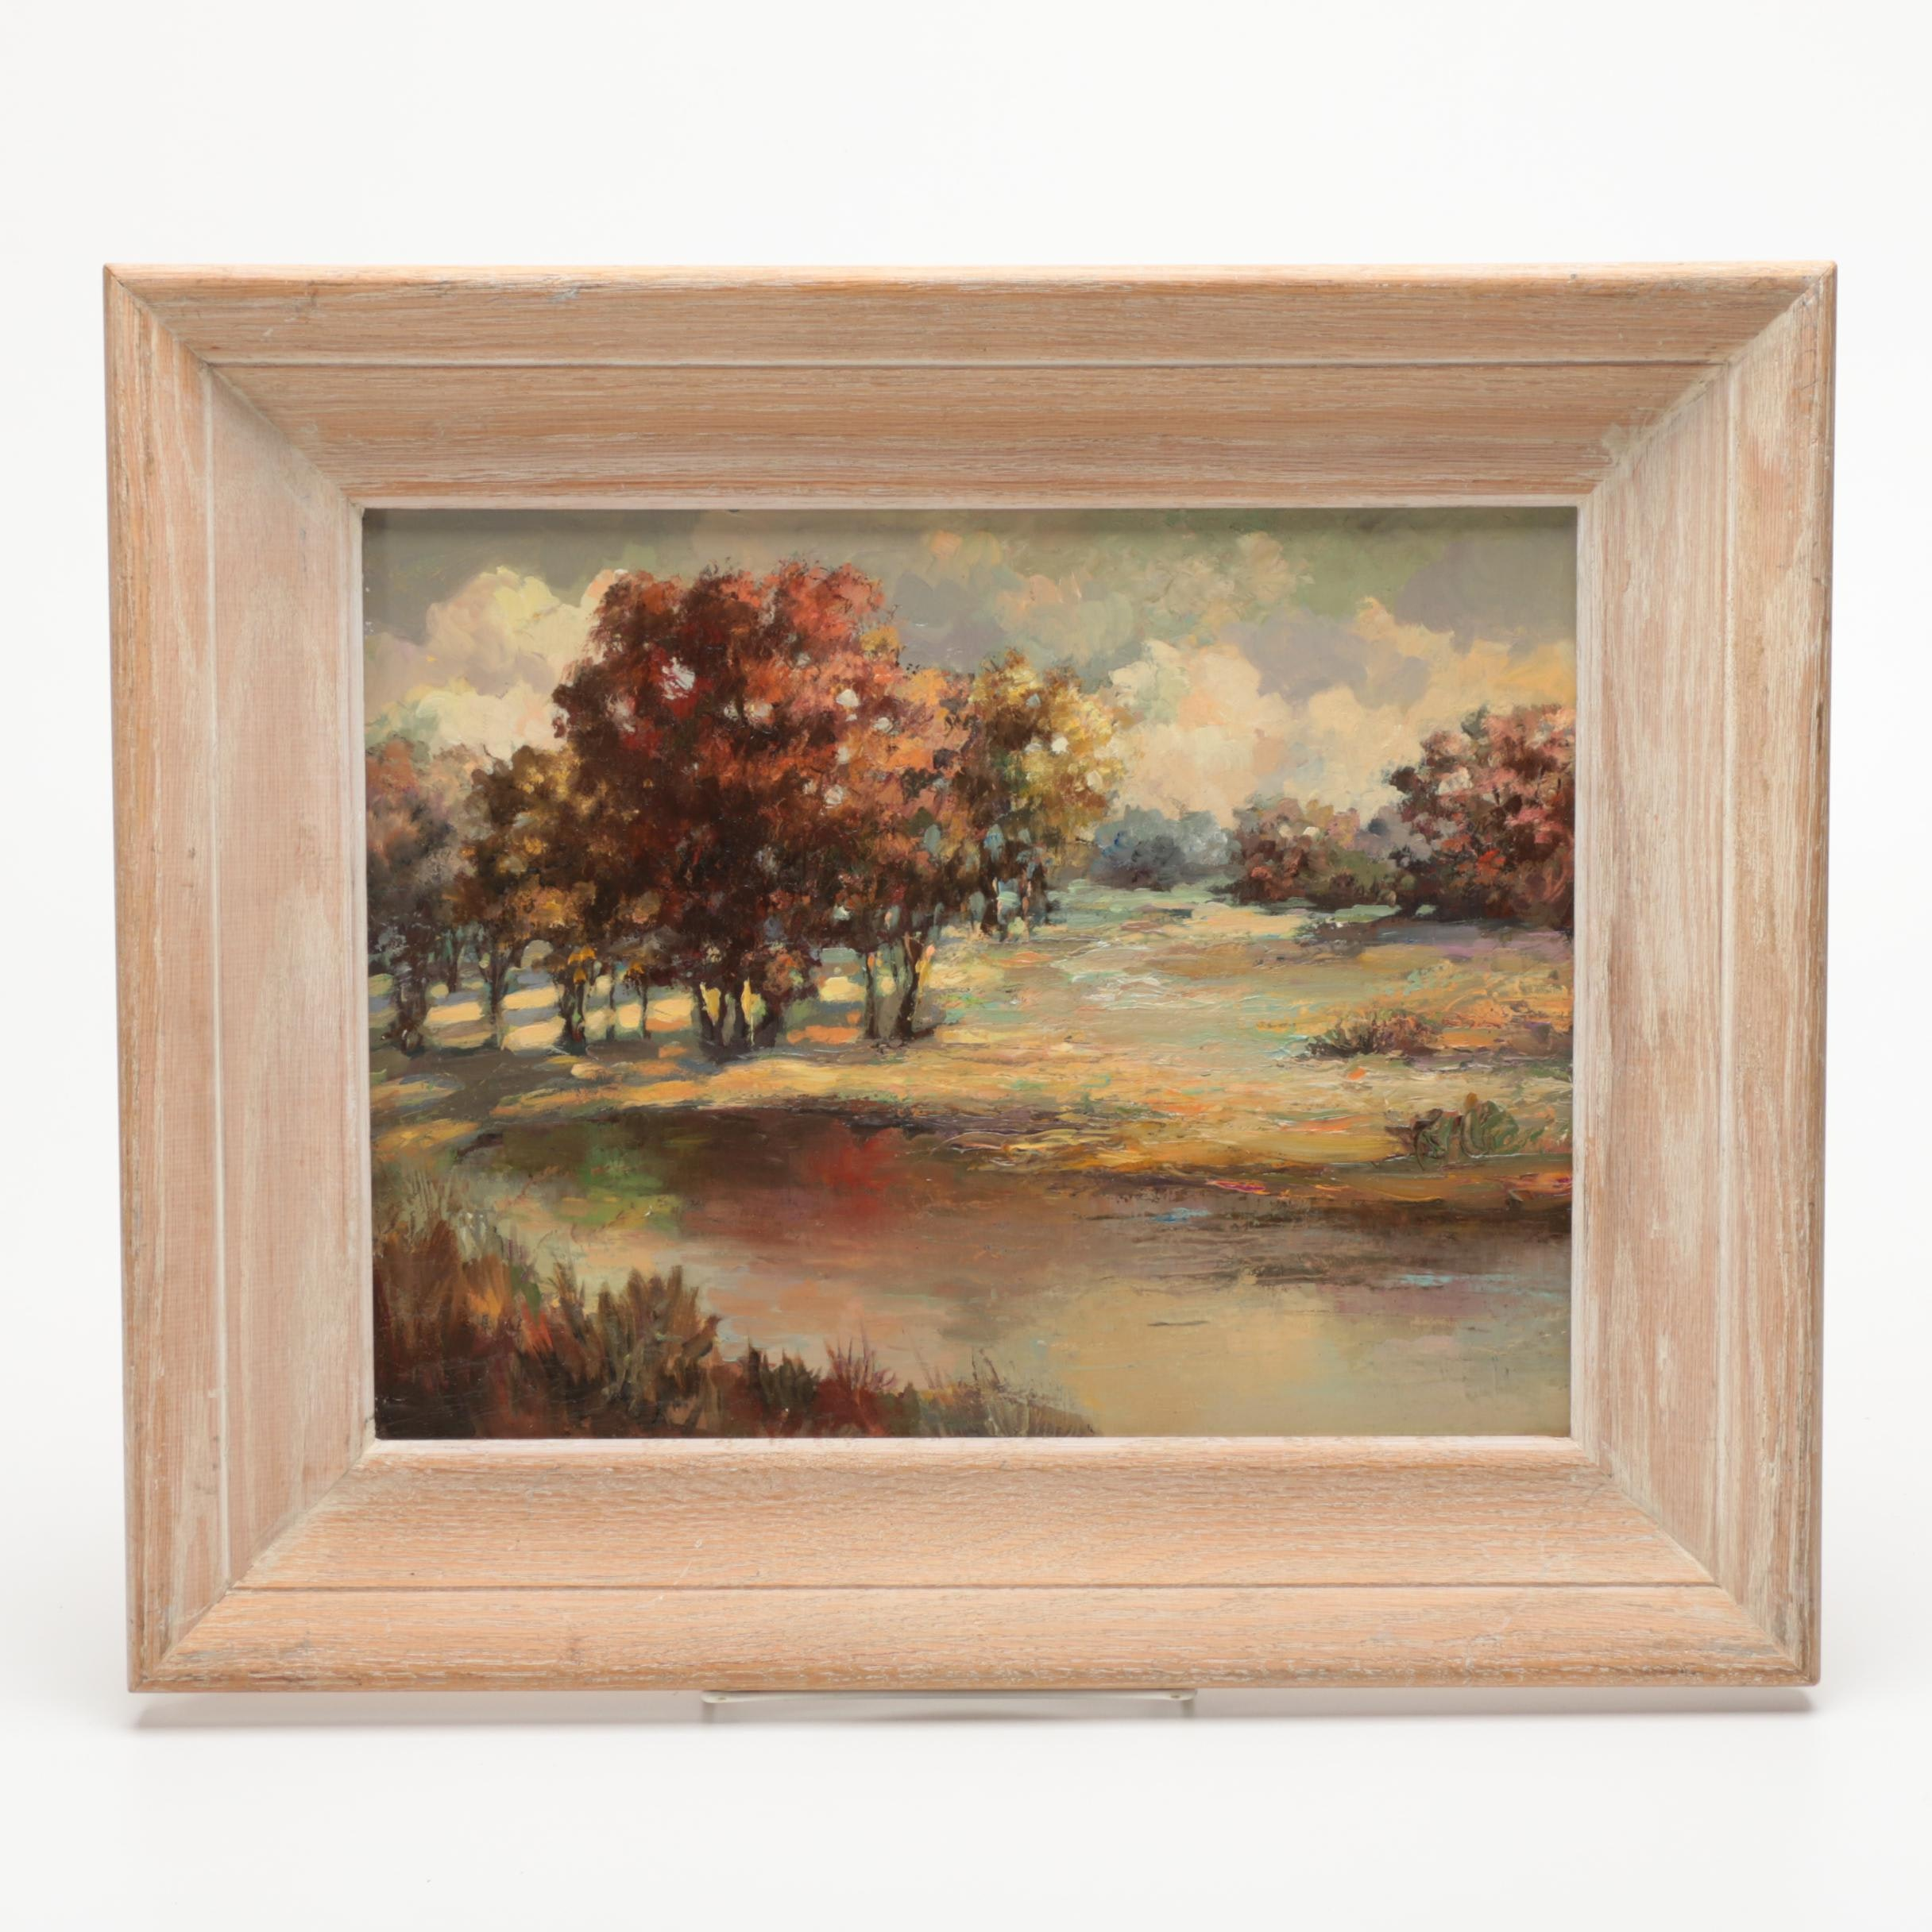 Oil on Board Landscape Painting Attributed to Charles E. Rubino